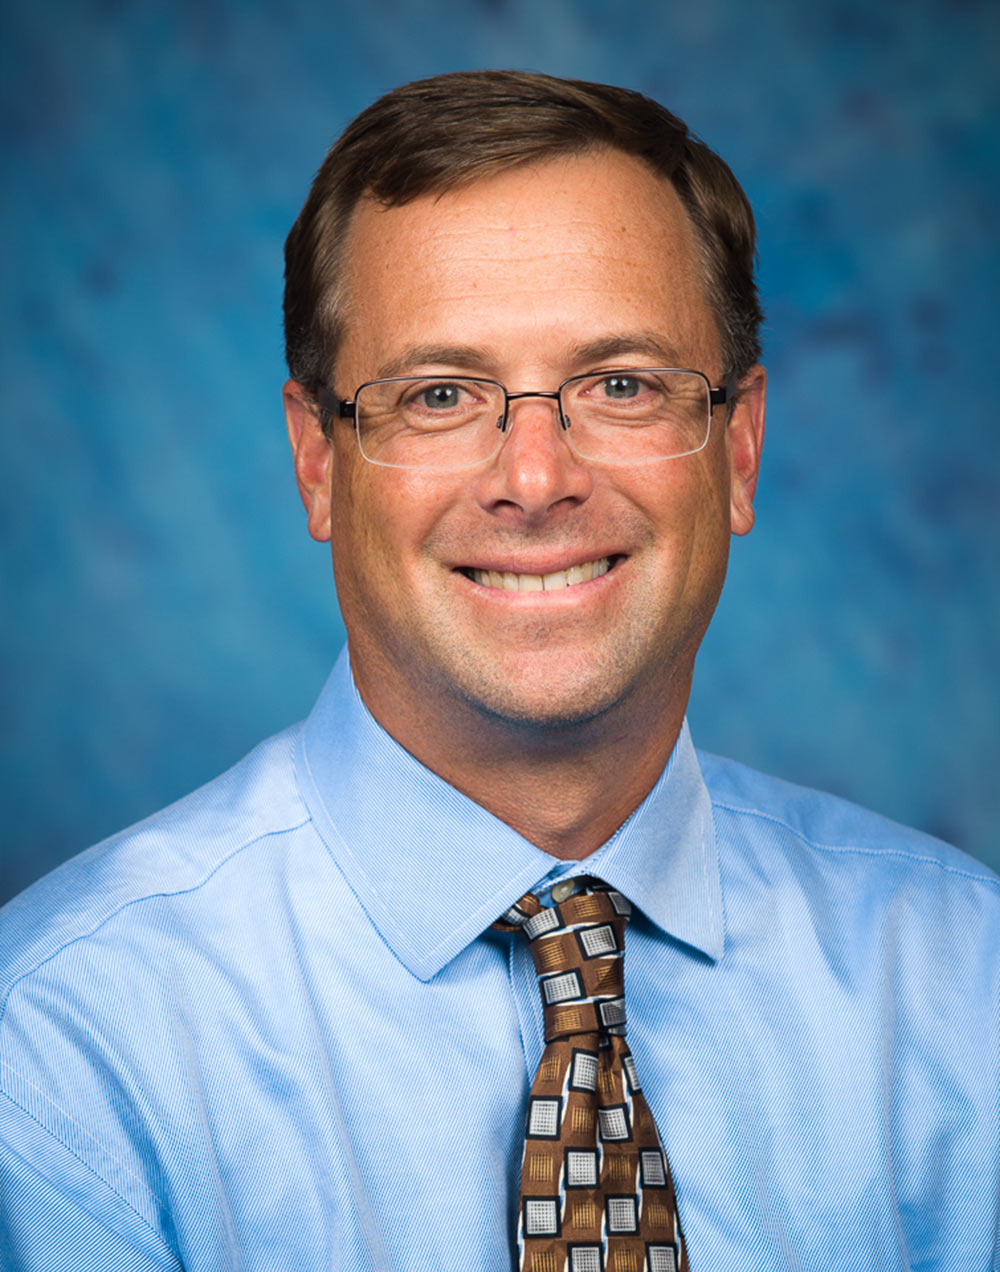 Chad Clabough – Senior Vice President, Business Development and Managed Care